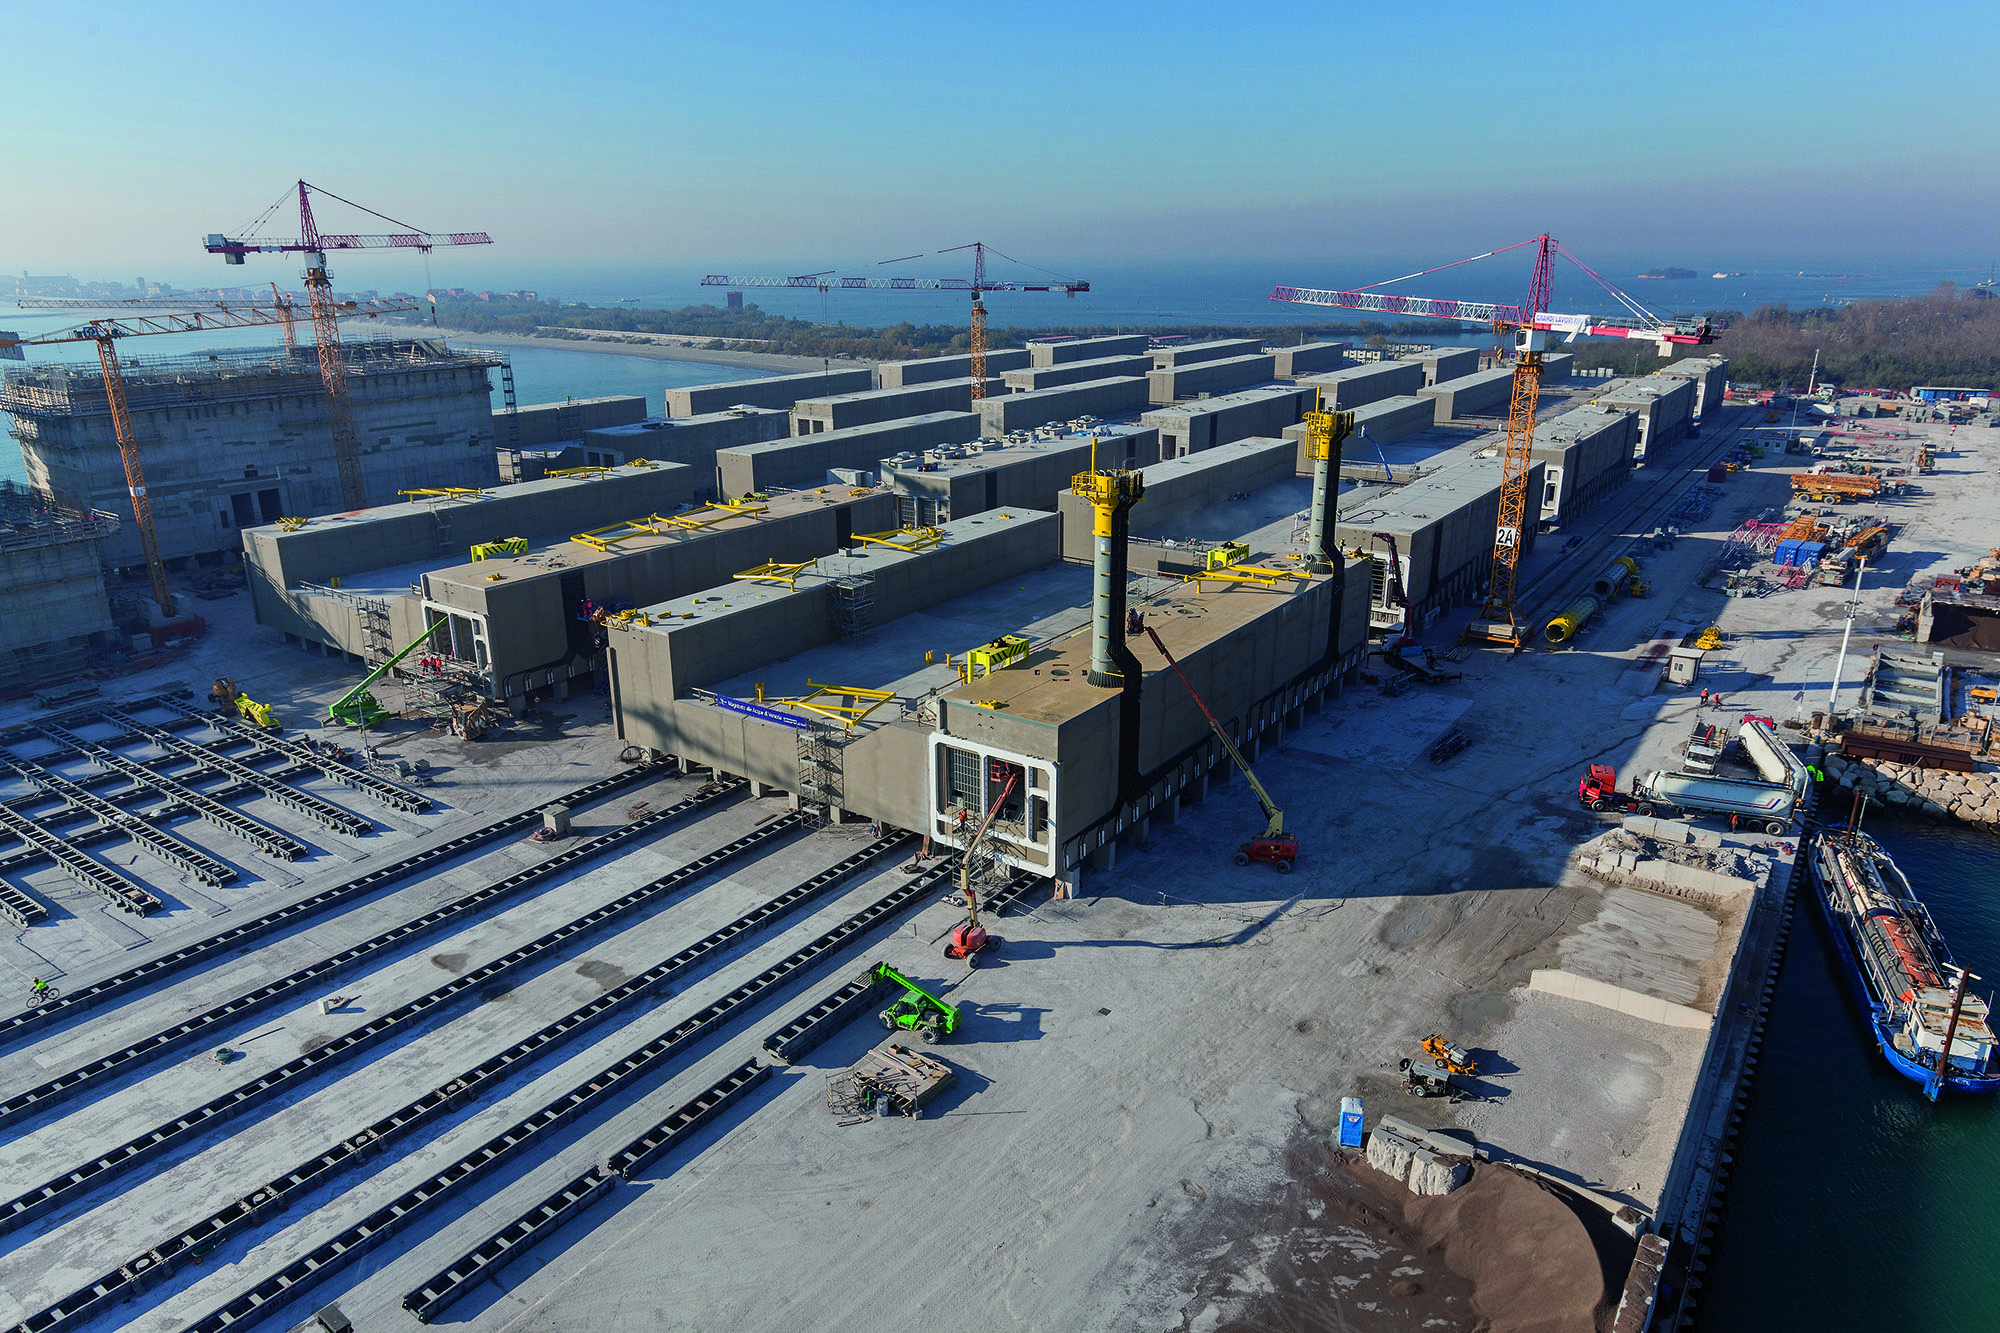 Mapei solutions for the MOSE project flooding barrier to protect th Venetian lagoon - Venice Italy - The precast concrete caissons being manufactured in the Malamocco site